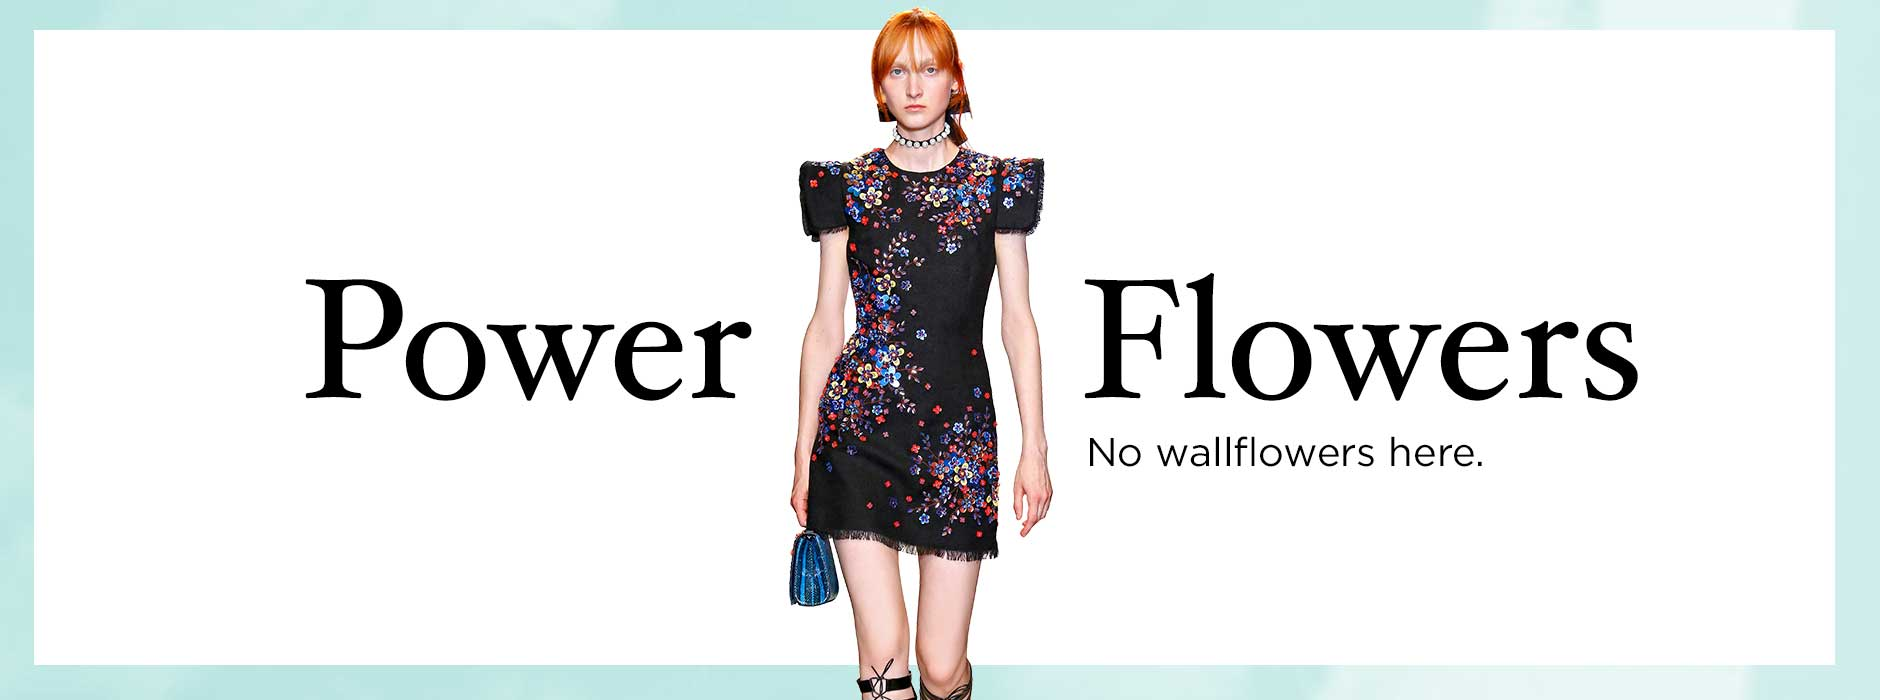 Spring Collections - Trend: Power Flowers